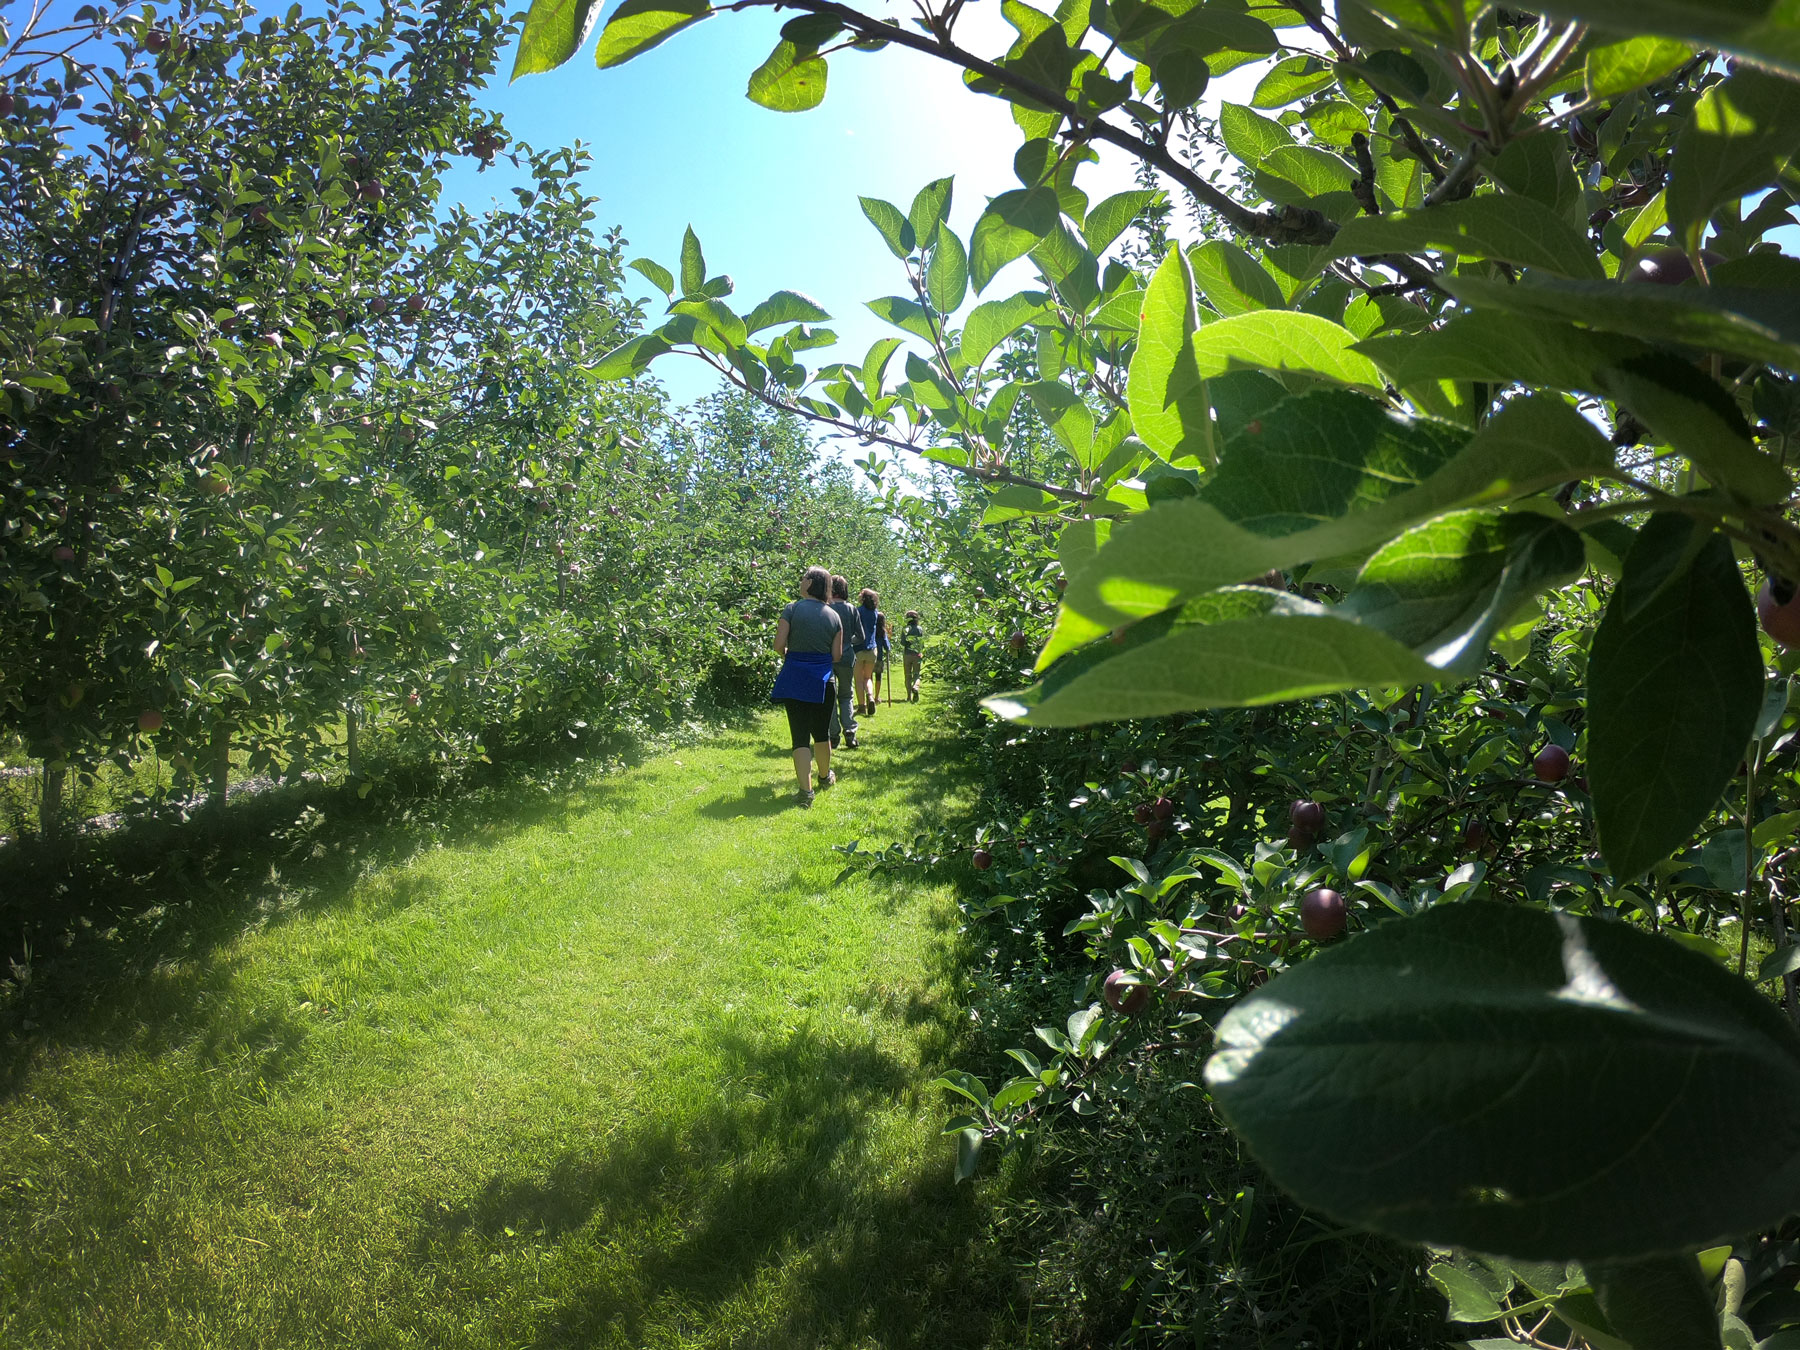 Family walking through orchards to pick apples at Burtt's Apple Orchard in Vermont